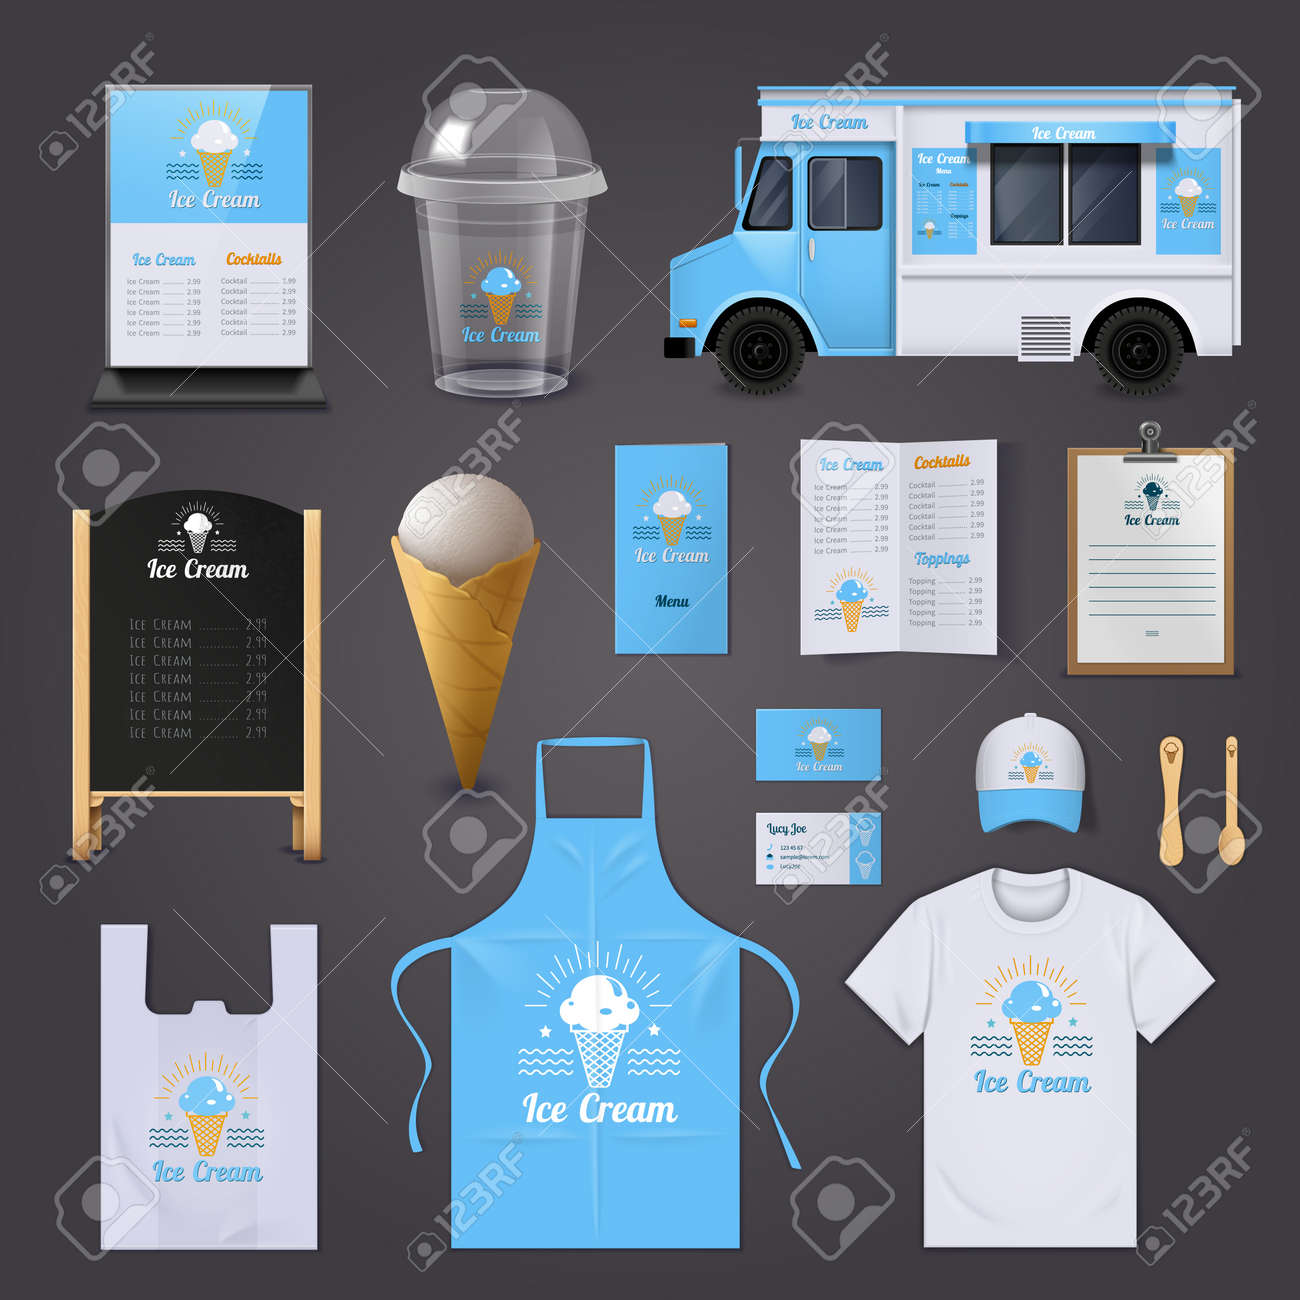 Ice cream corporate identity realistic icons set with apron menu and van isolated vector illustration - 165583242